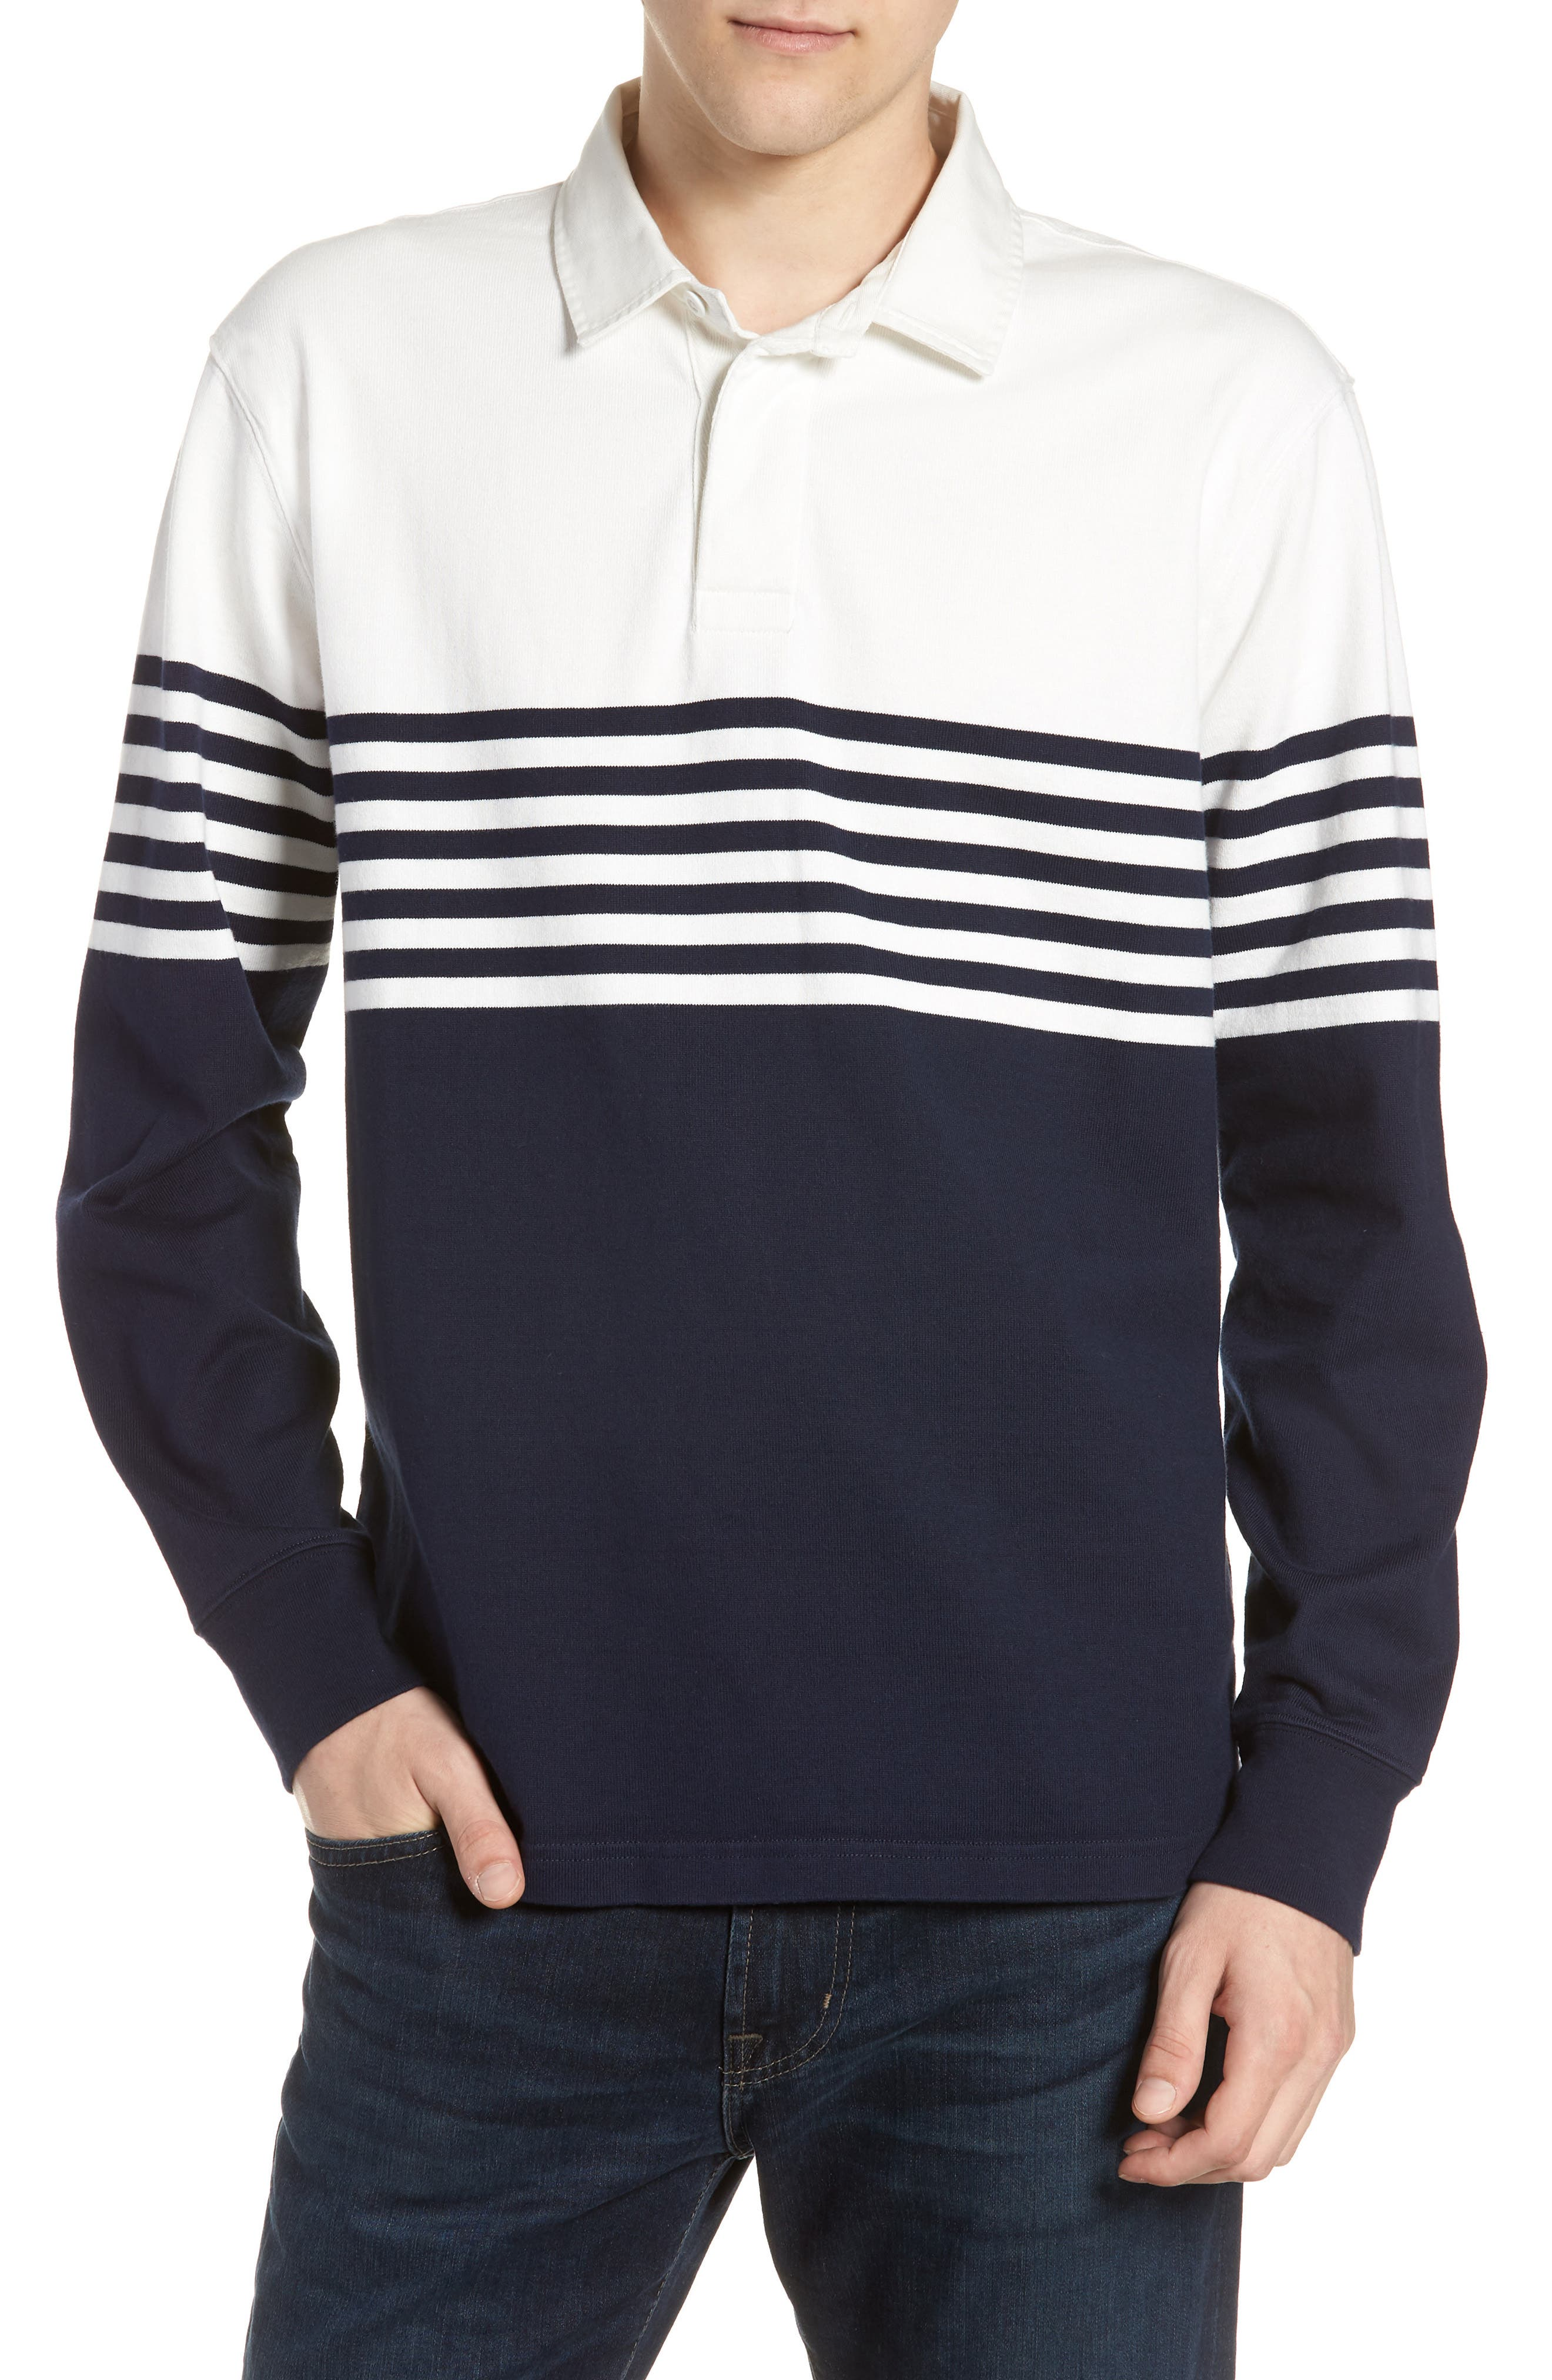 1984 Colorblock Stripe Rugby Shirt,                         Main,                         color, 400